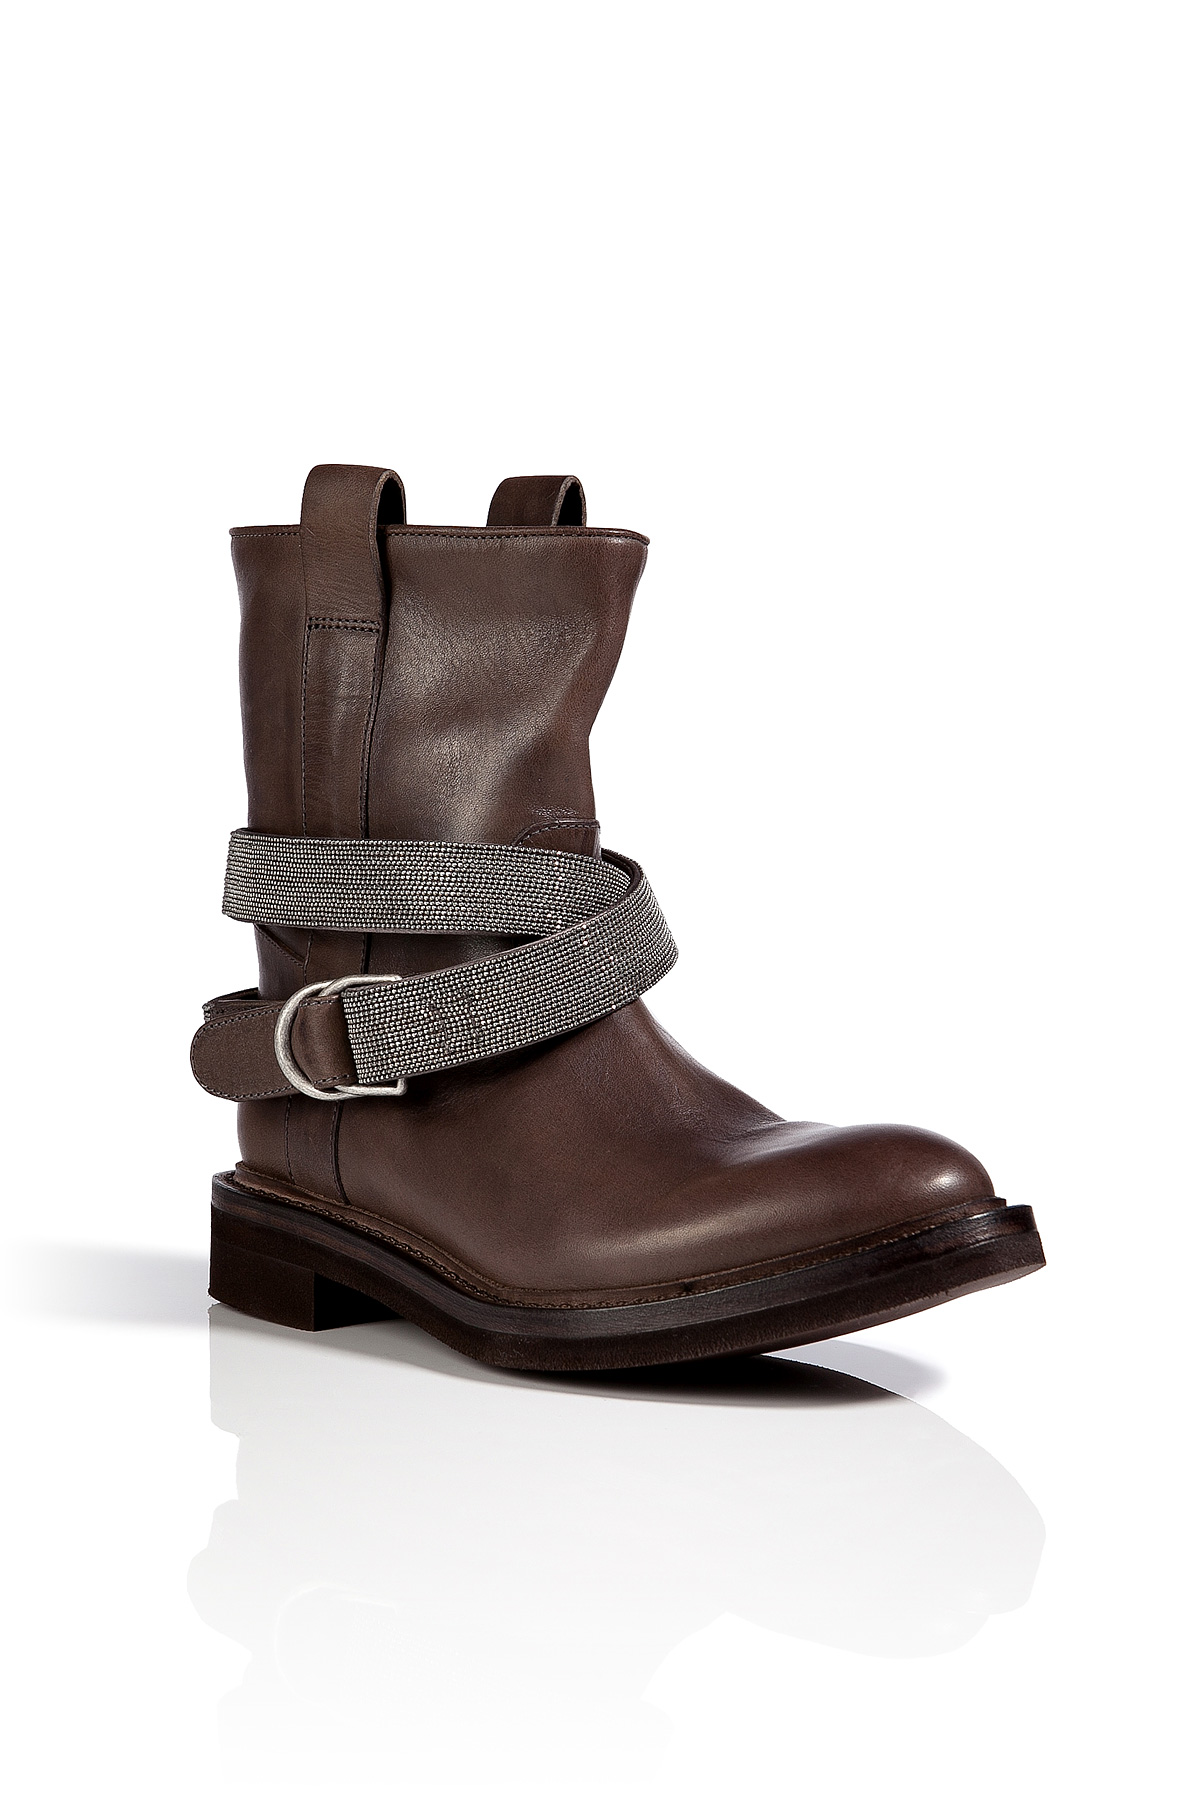 Brunello Cucinelli Leather Embellished Strap Boots In